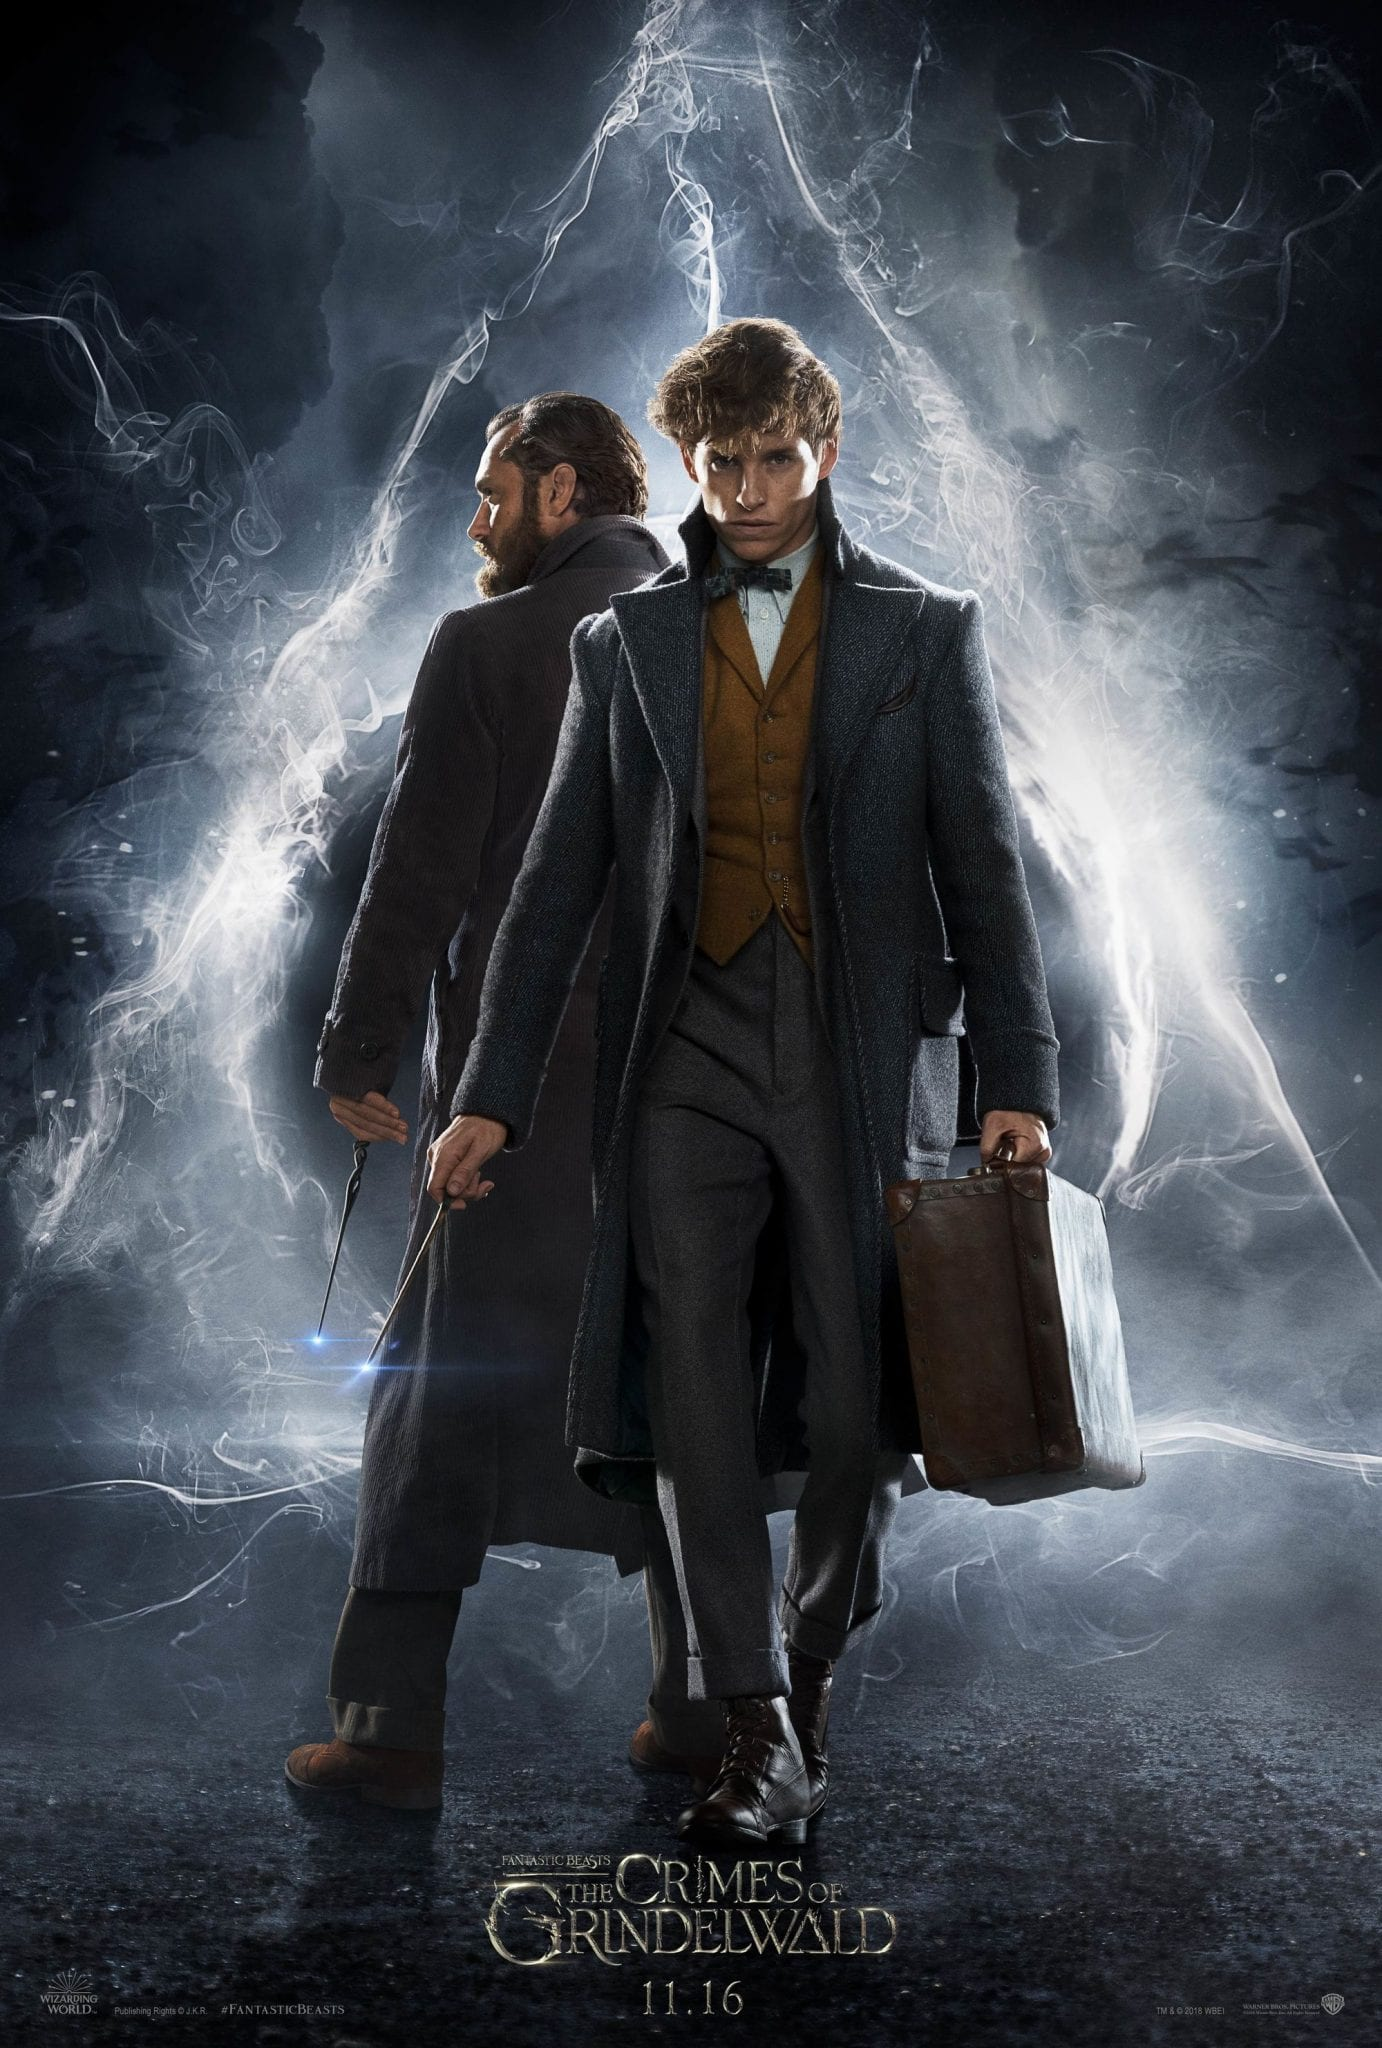 My Way Matinee - Fantastic Beasts: The Crimes of Grindelwald